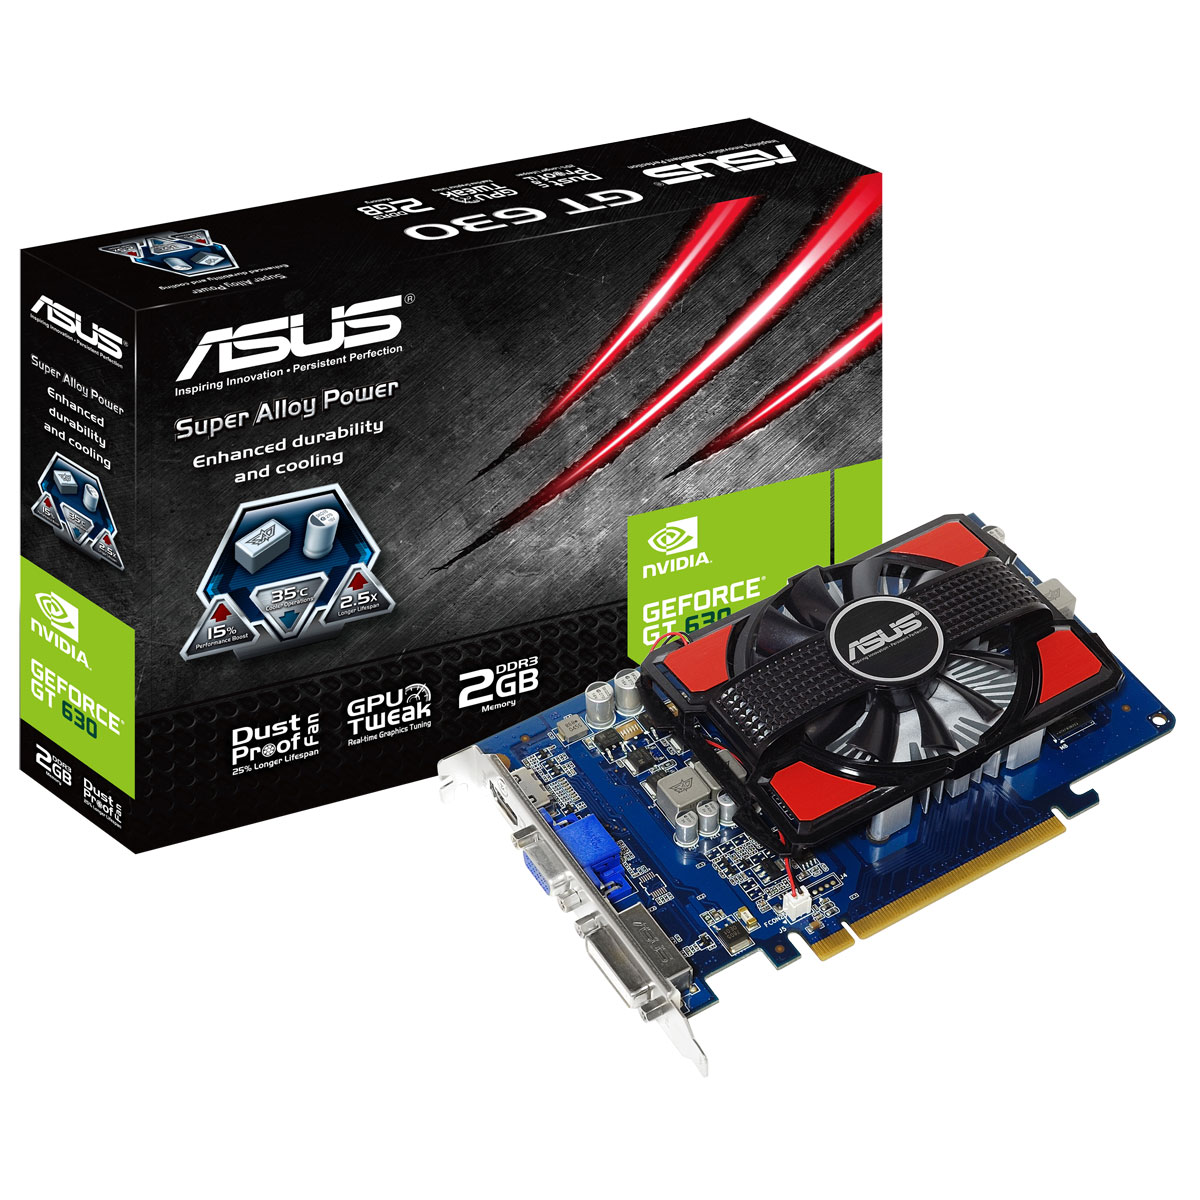 Carte graphique Asus GT630-2GD3 2 GB 2 Go HDMI/DVI - PCI Express (NVIDIA GeForce avec CUDA GT 630)